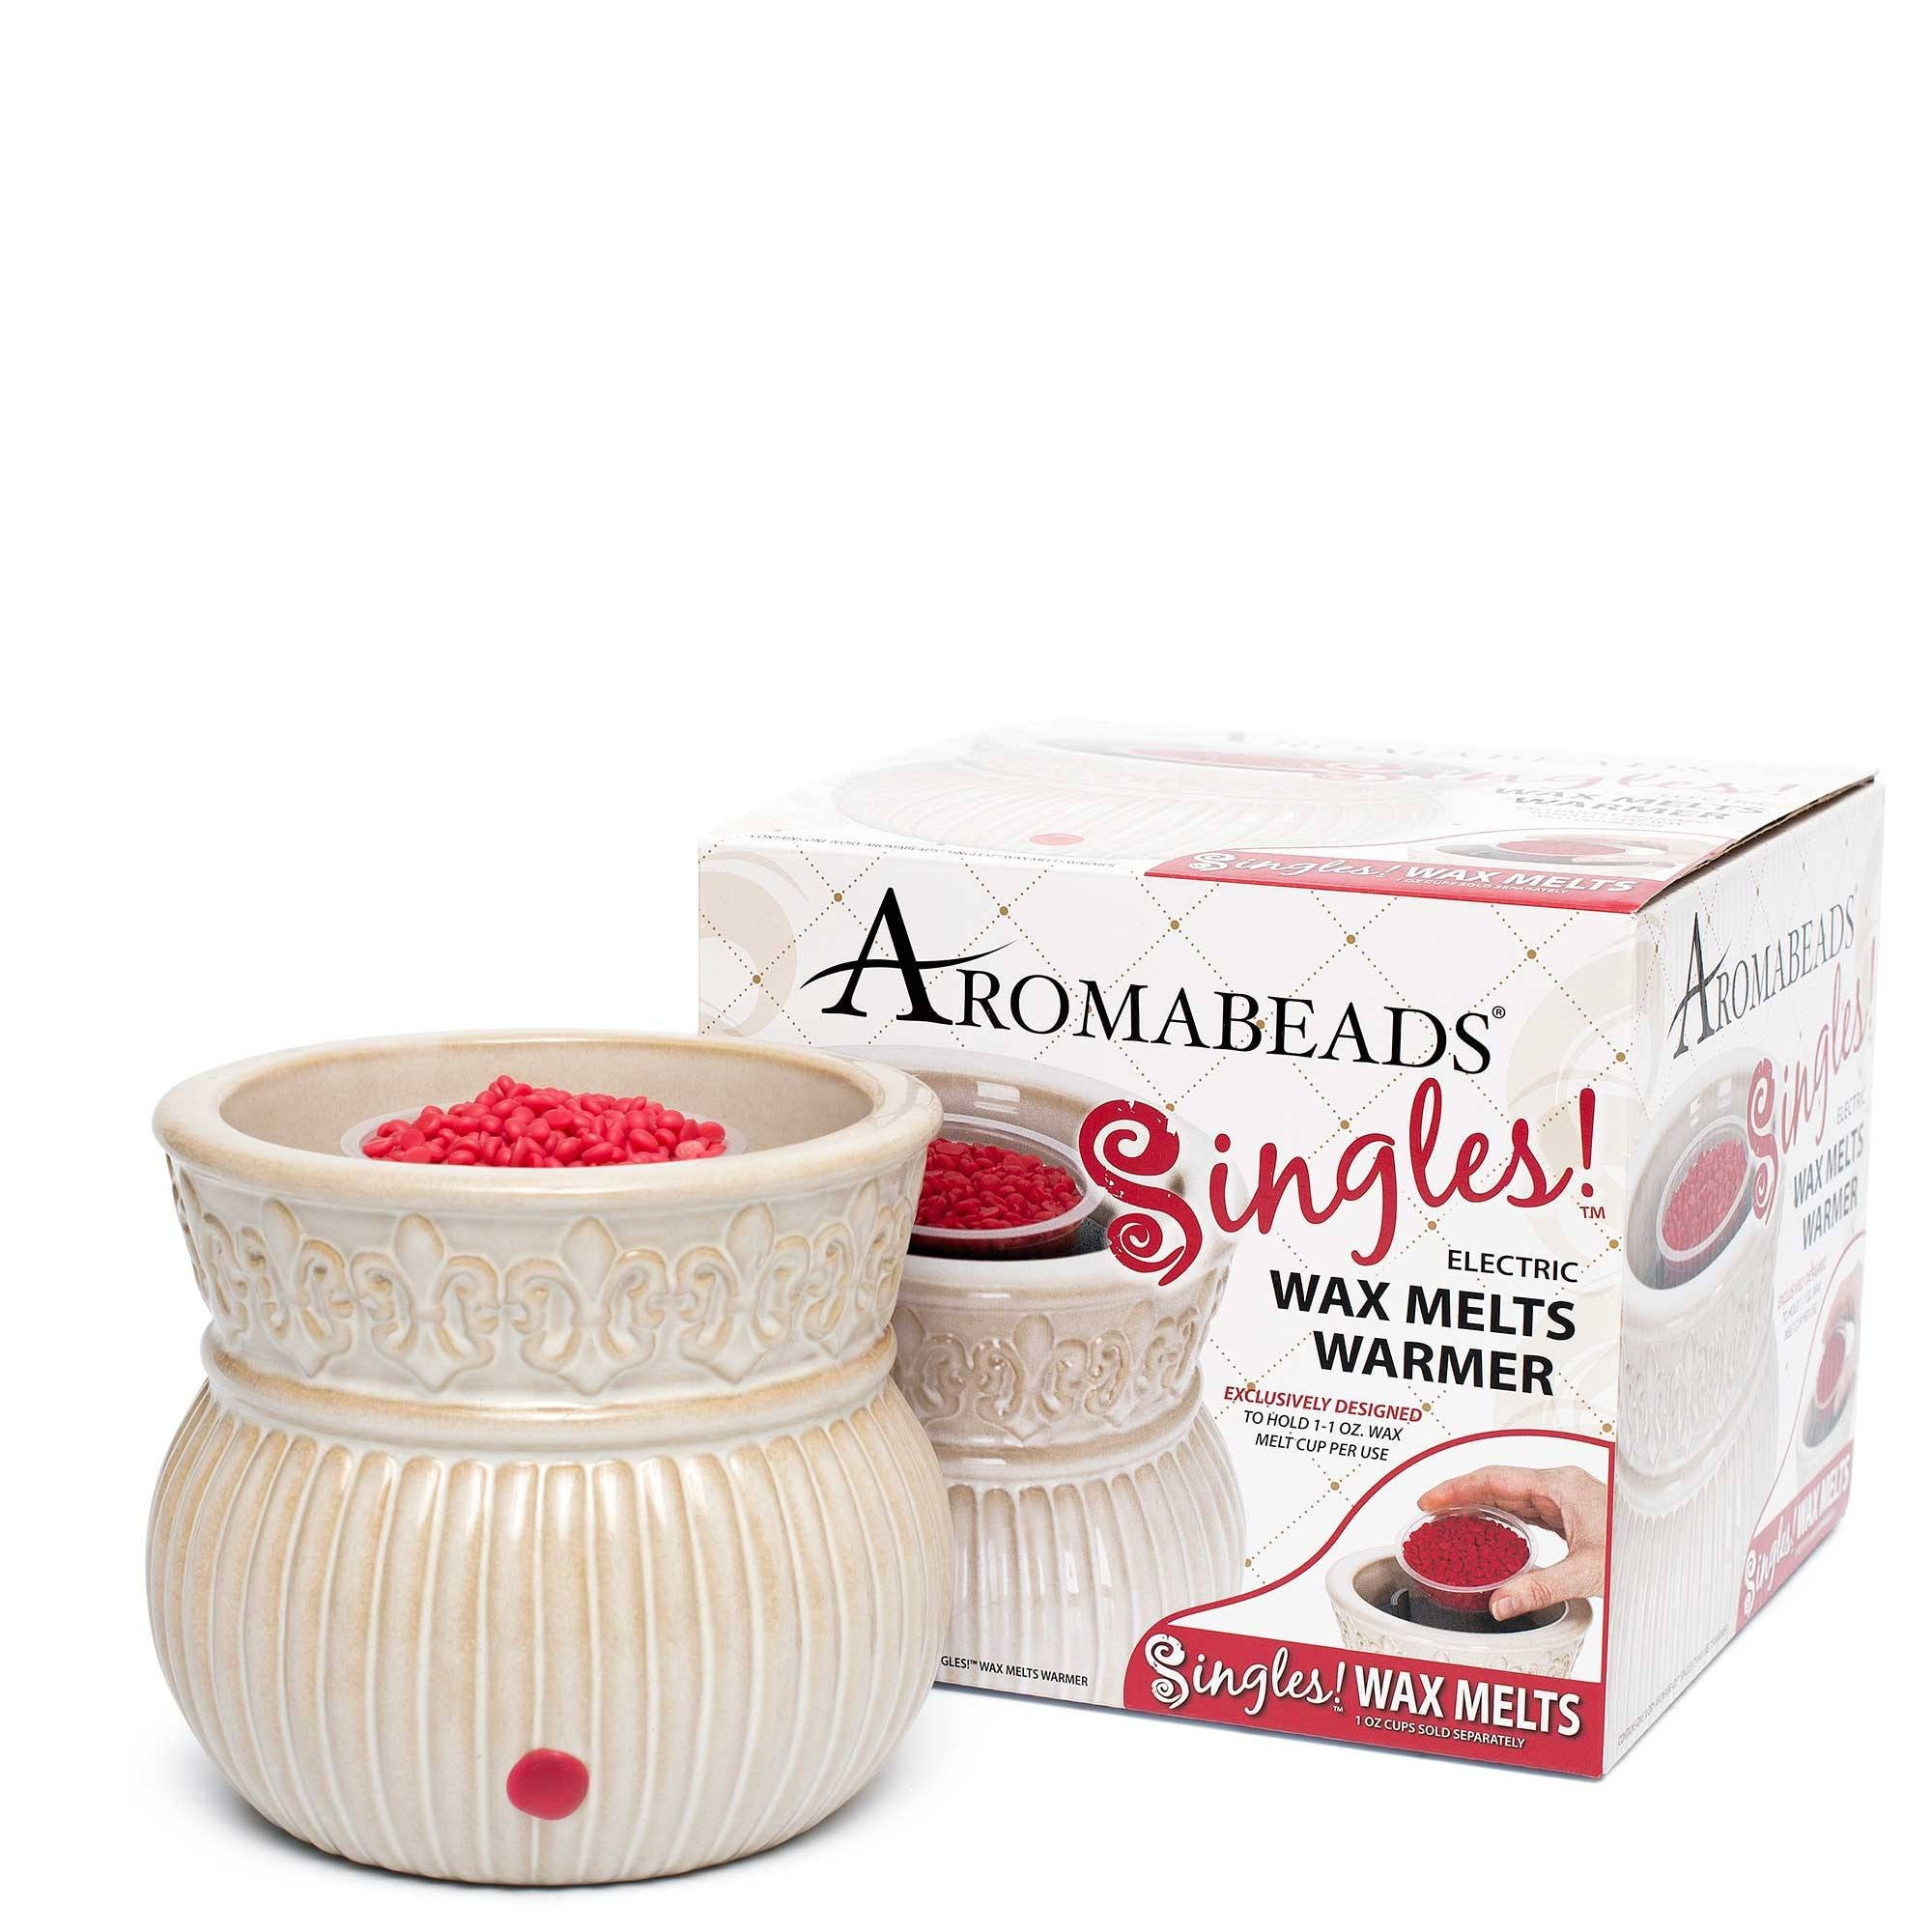 Aromabeads Singles Luxurious Velvet Woods Scented Wax Melts Melts Candlemart.com $ 1.49